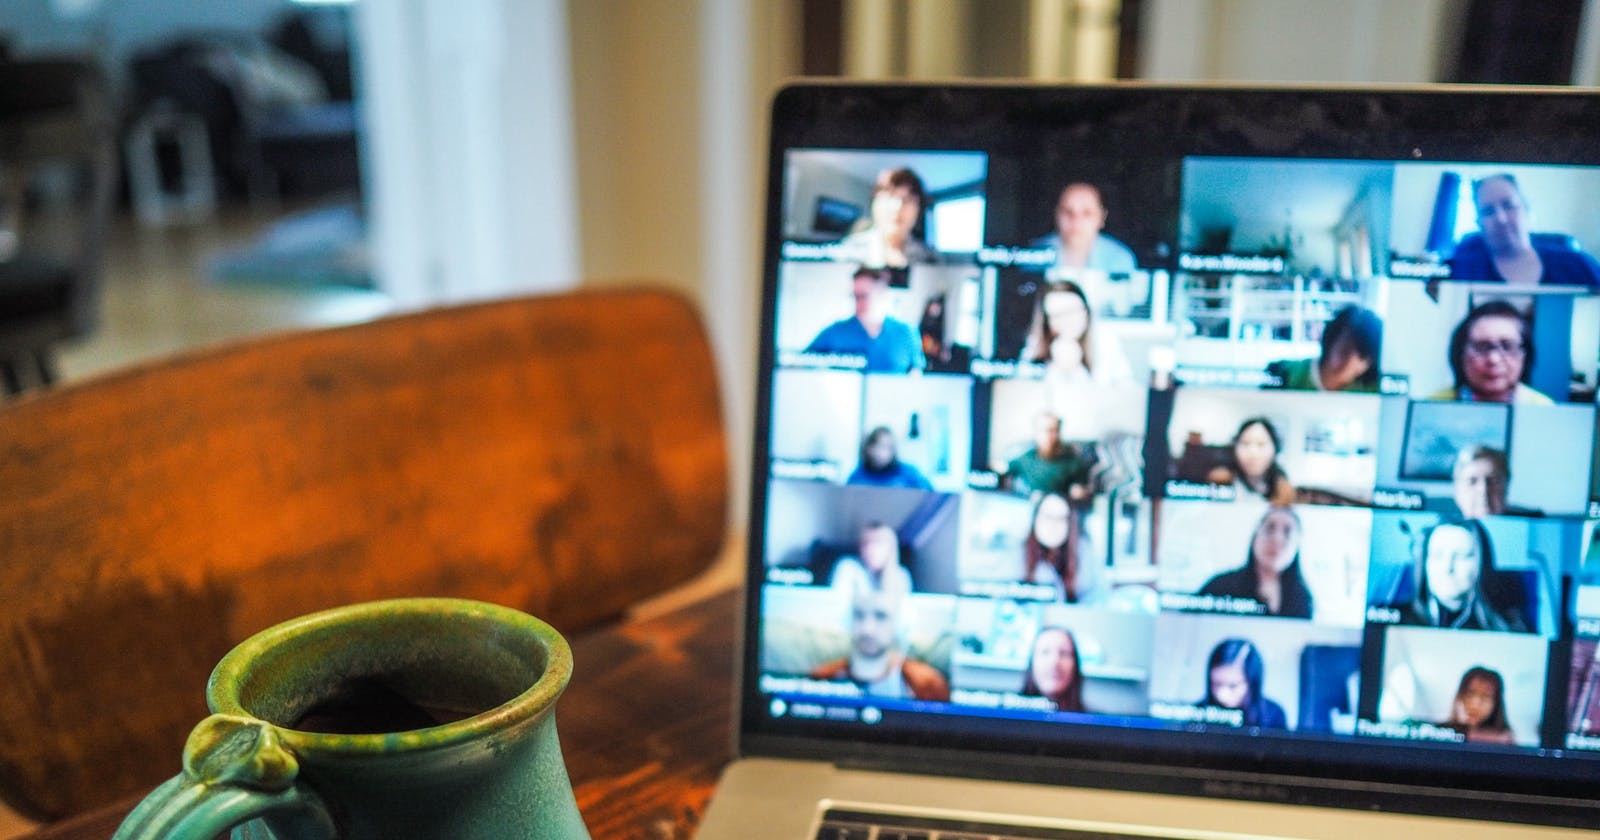 16 Tips on How to Make Remote Meetings More Efficient (+ Apps & Tools)